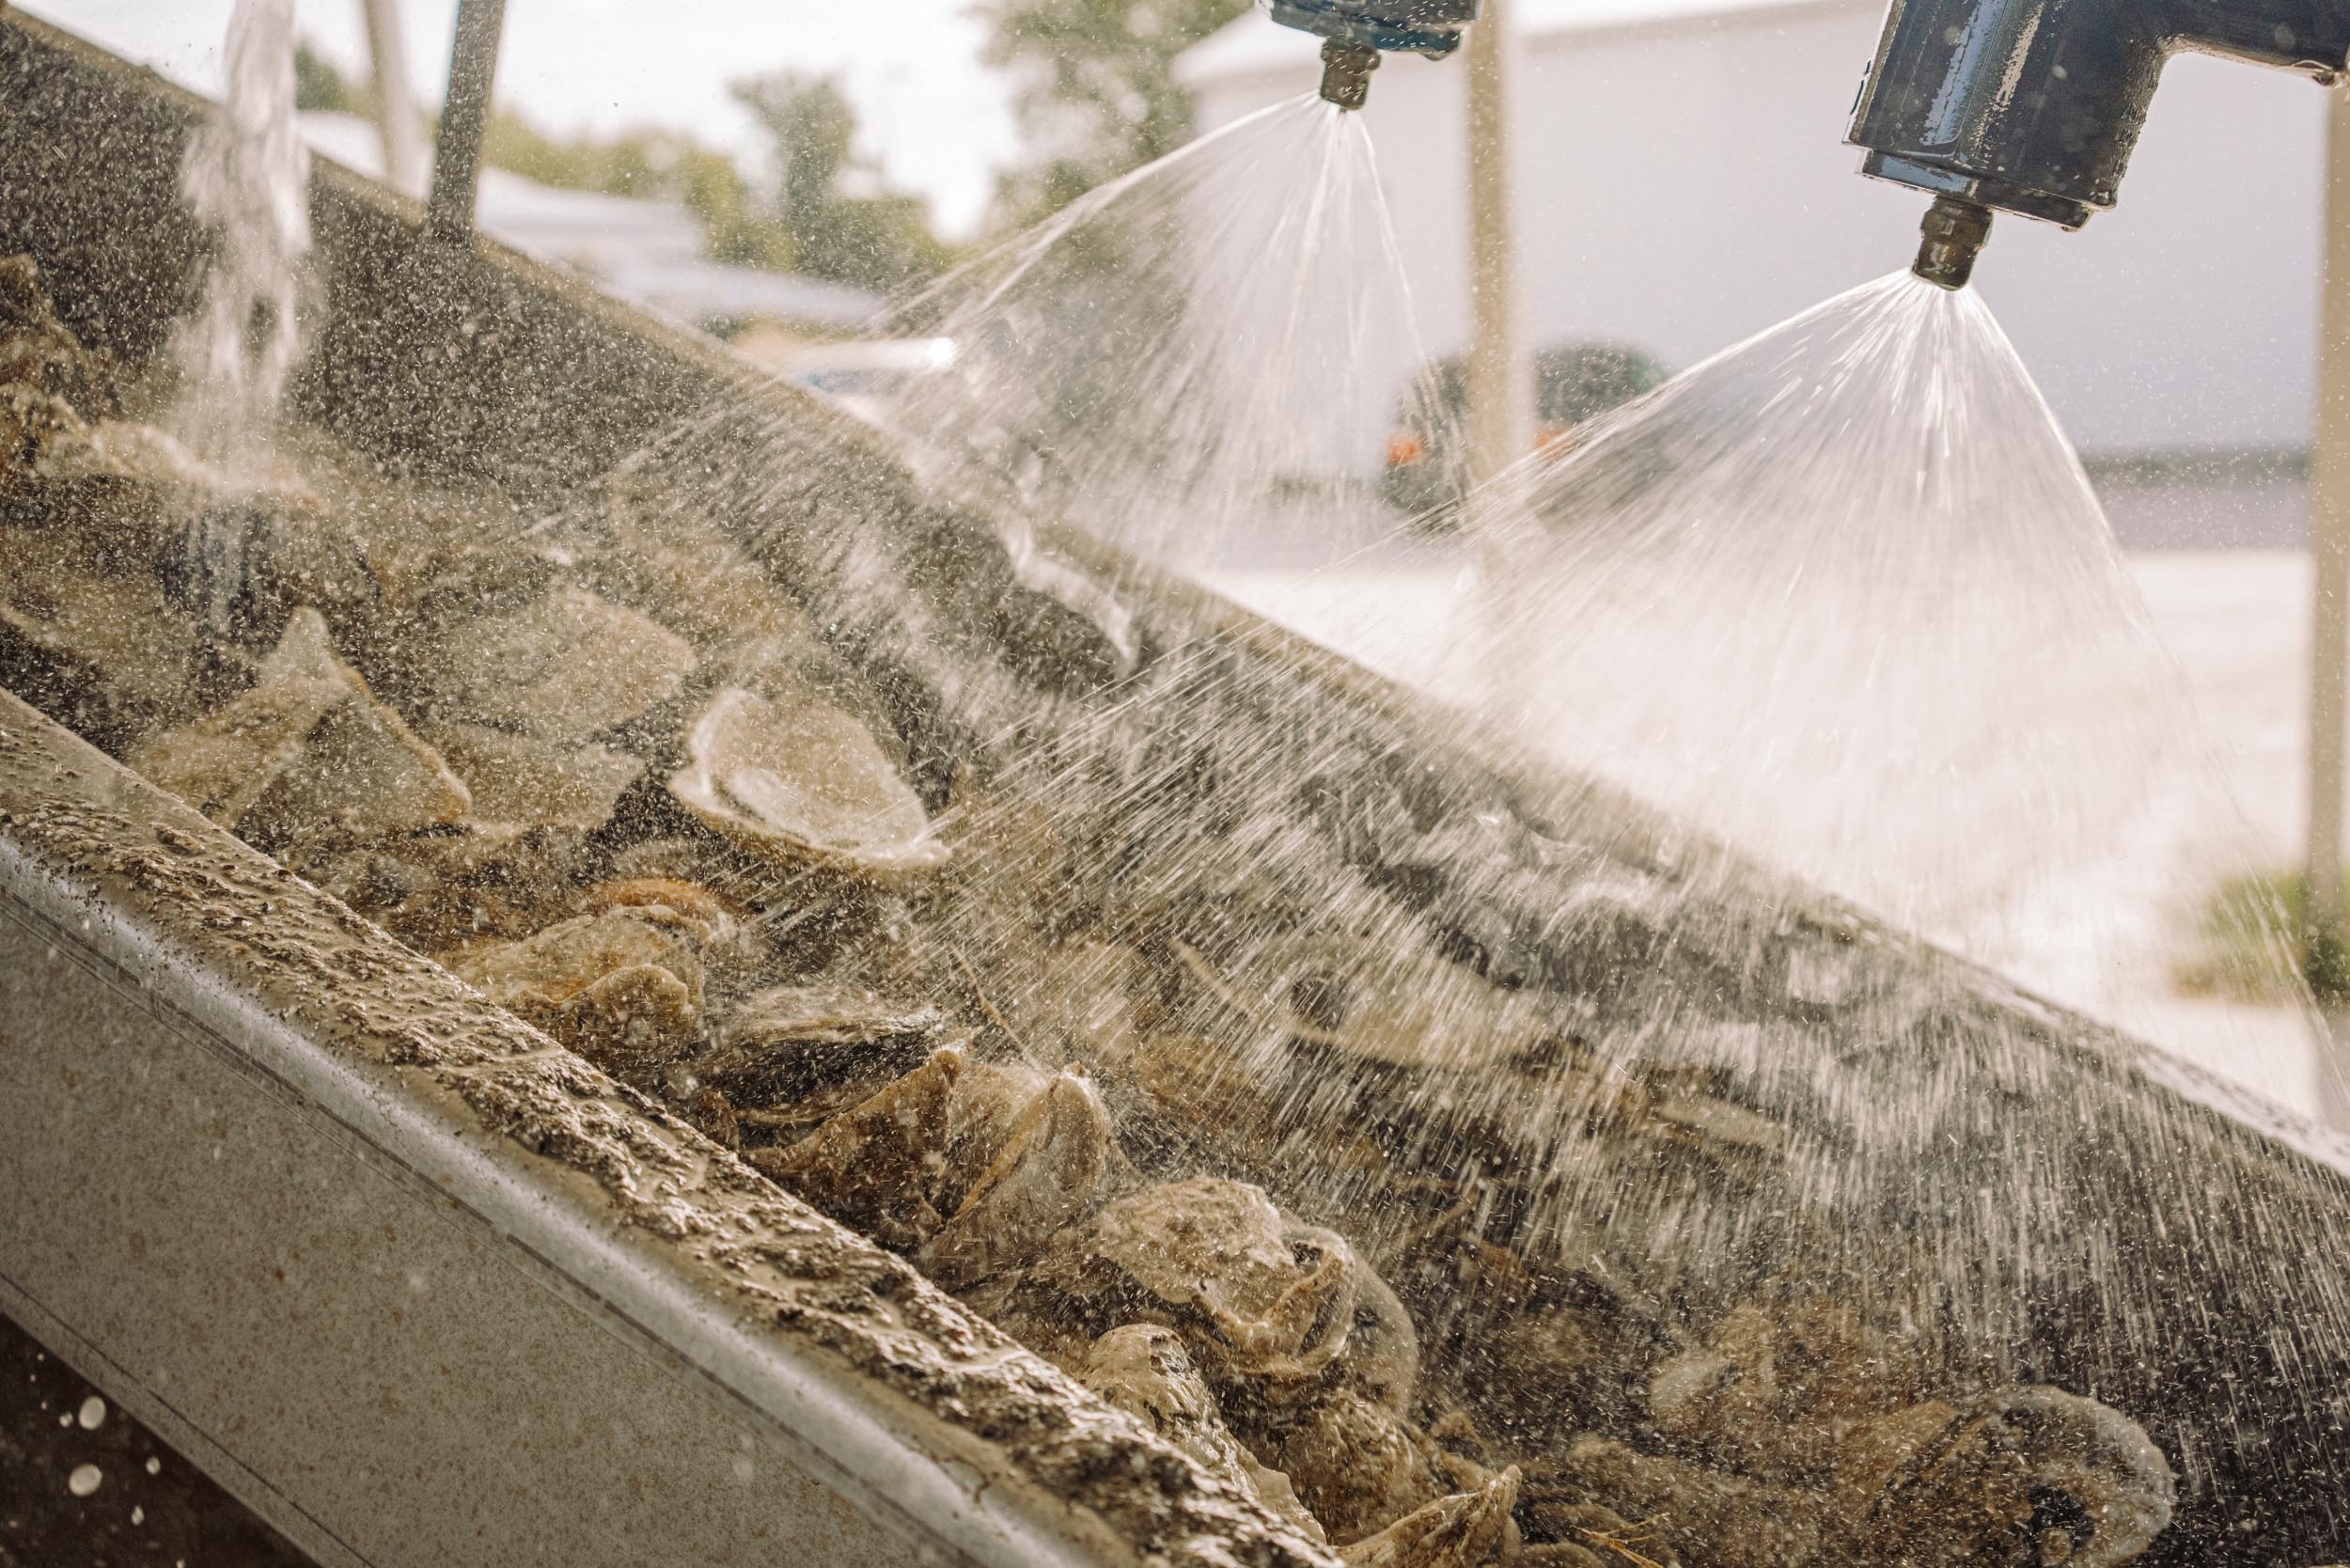 oyster shells being cleaned with power wash